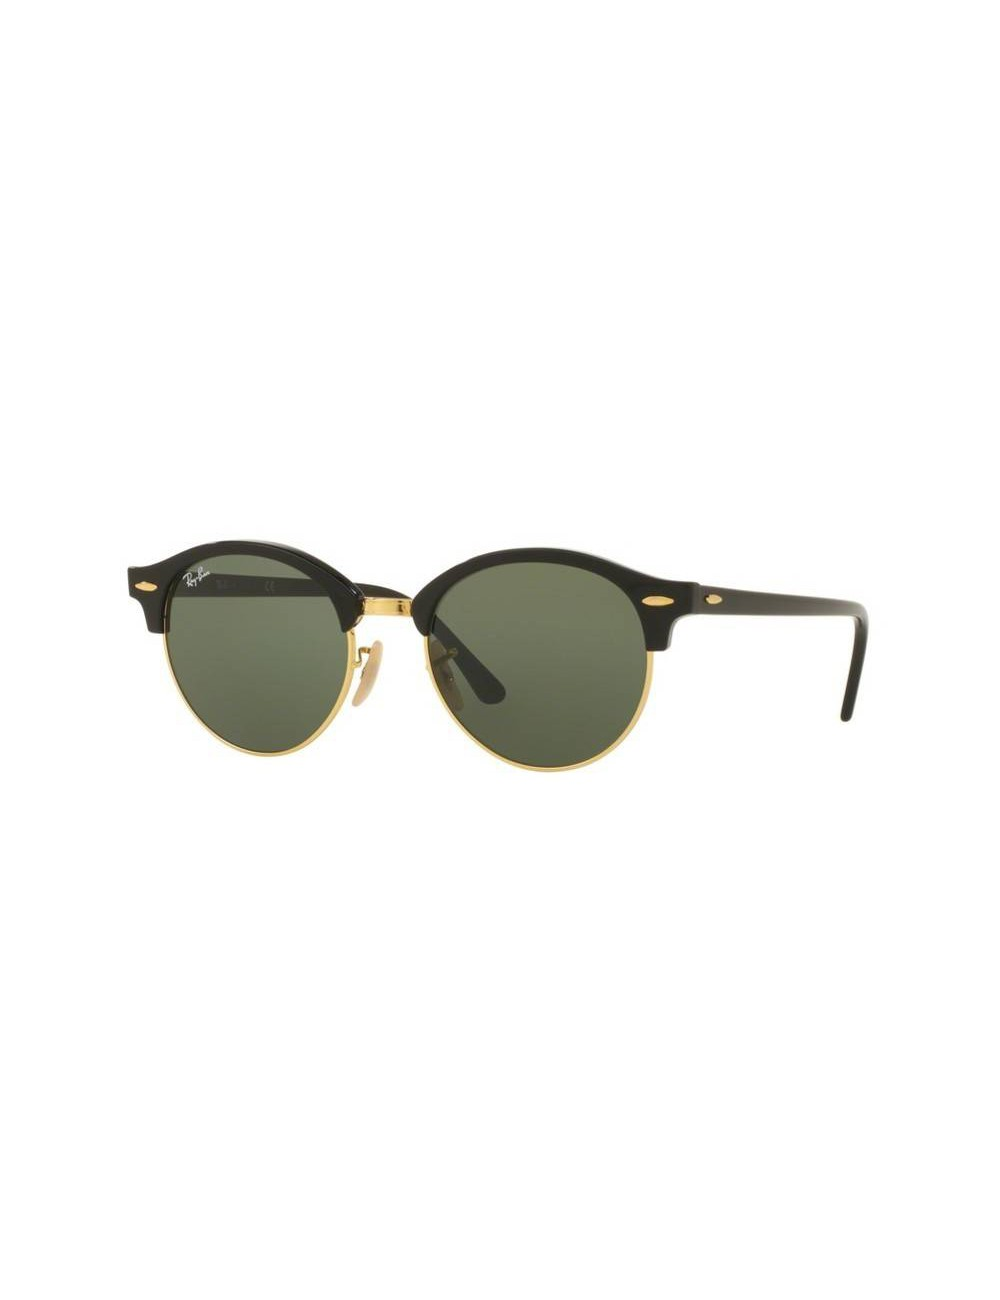 Ray Lunettes Clubround Rb4246 Ban 901 Soleil Blackgold De kn0wPXON8